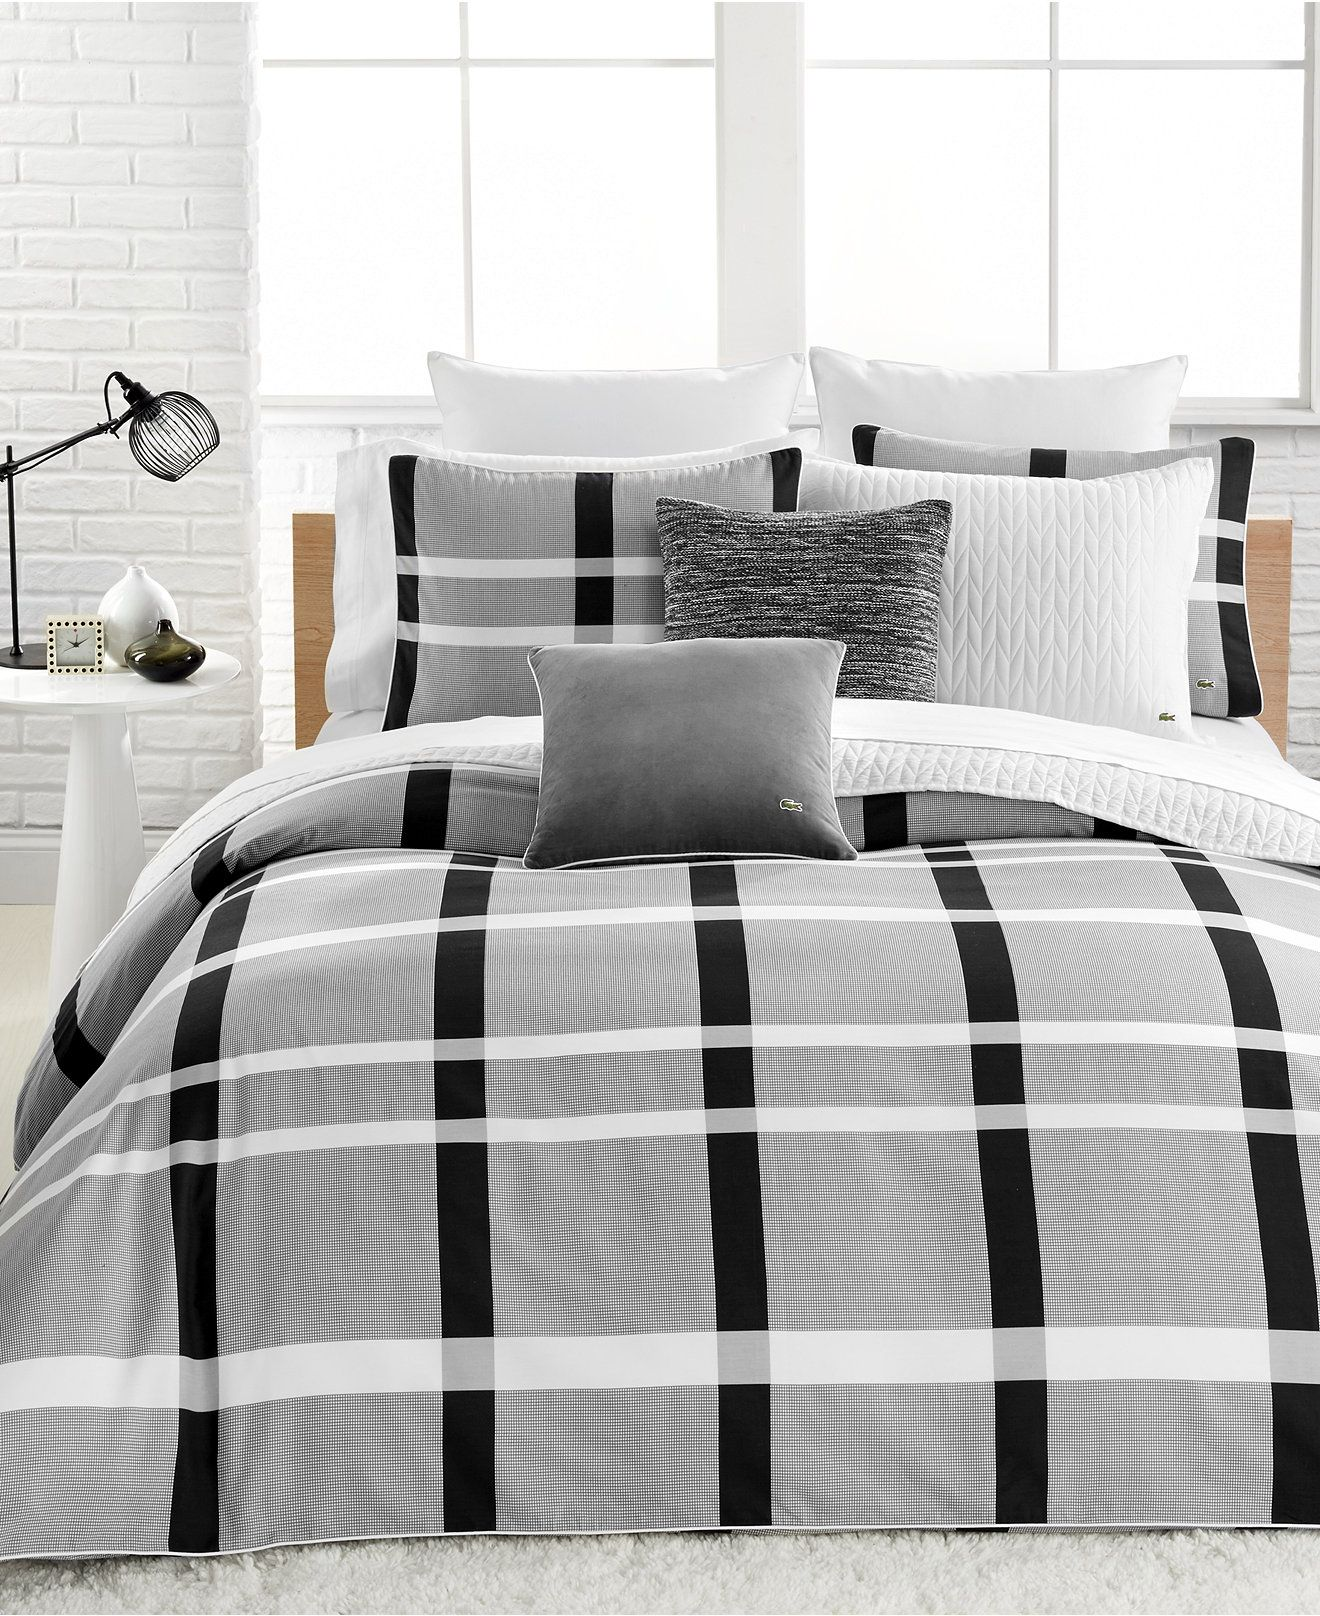 Lacoste Paris Bedding Collection Cotton